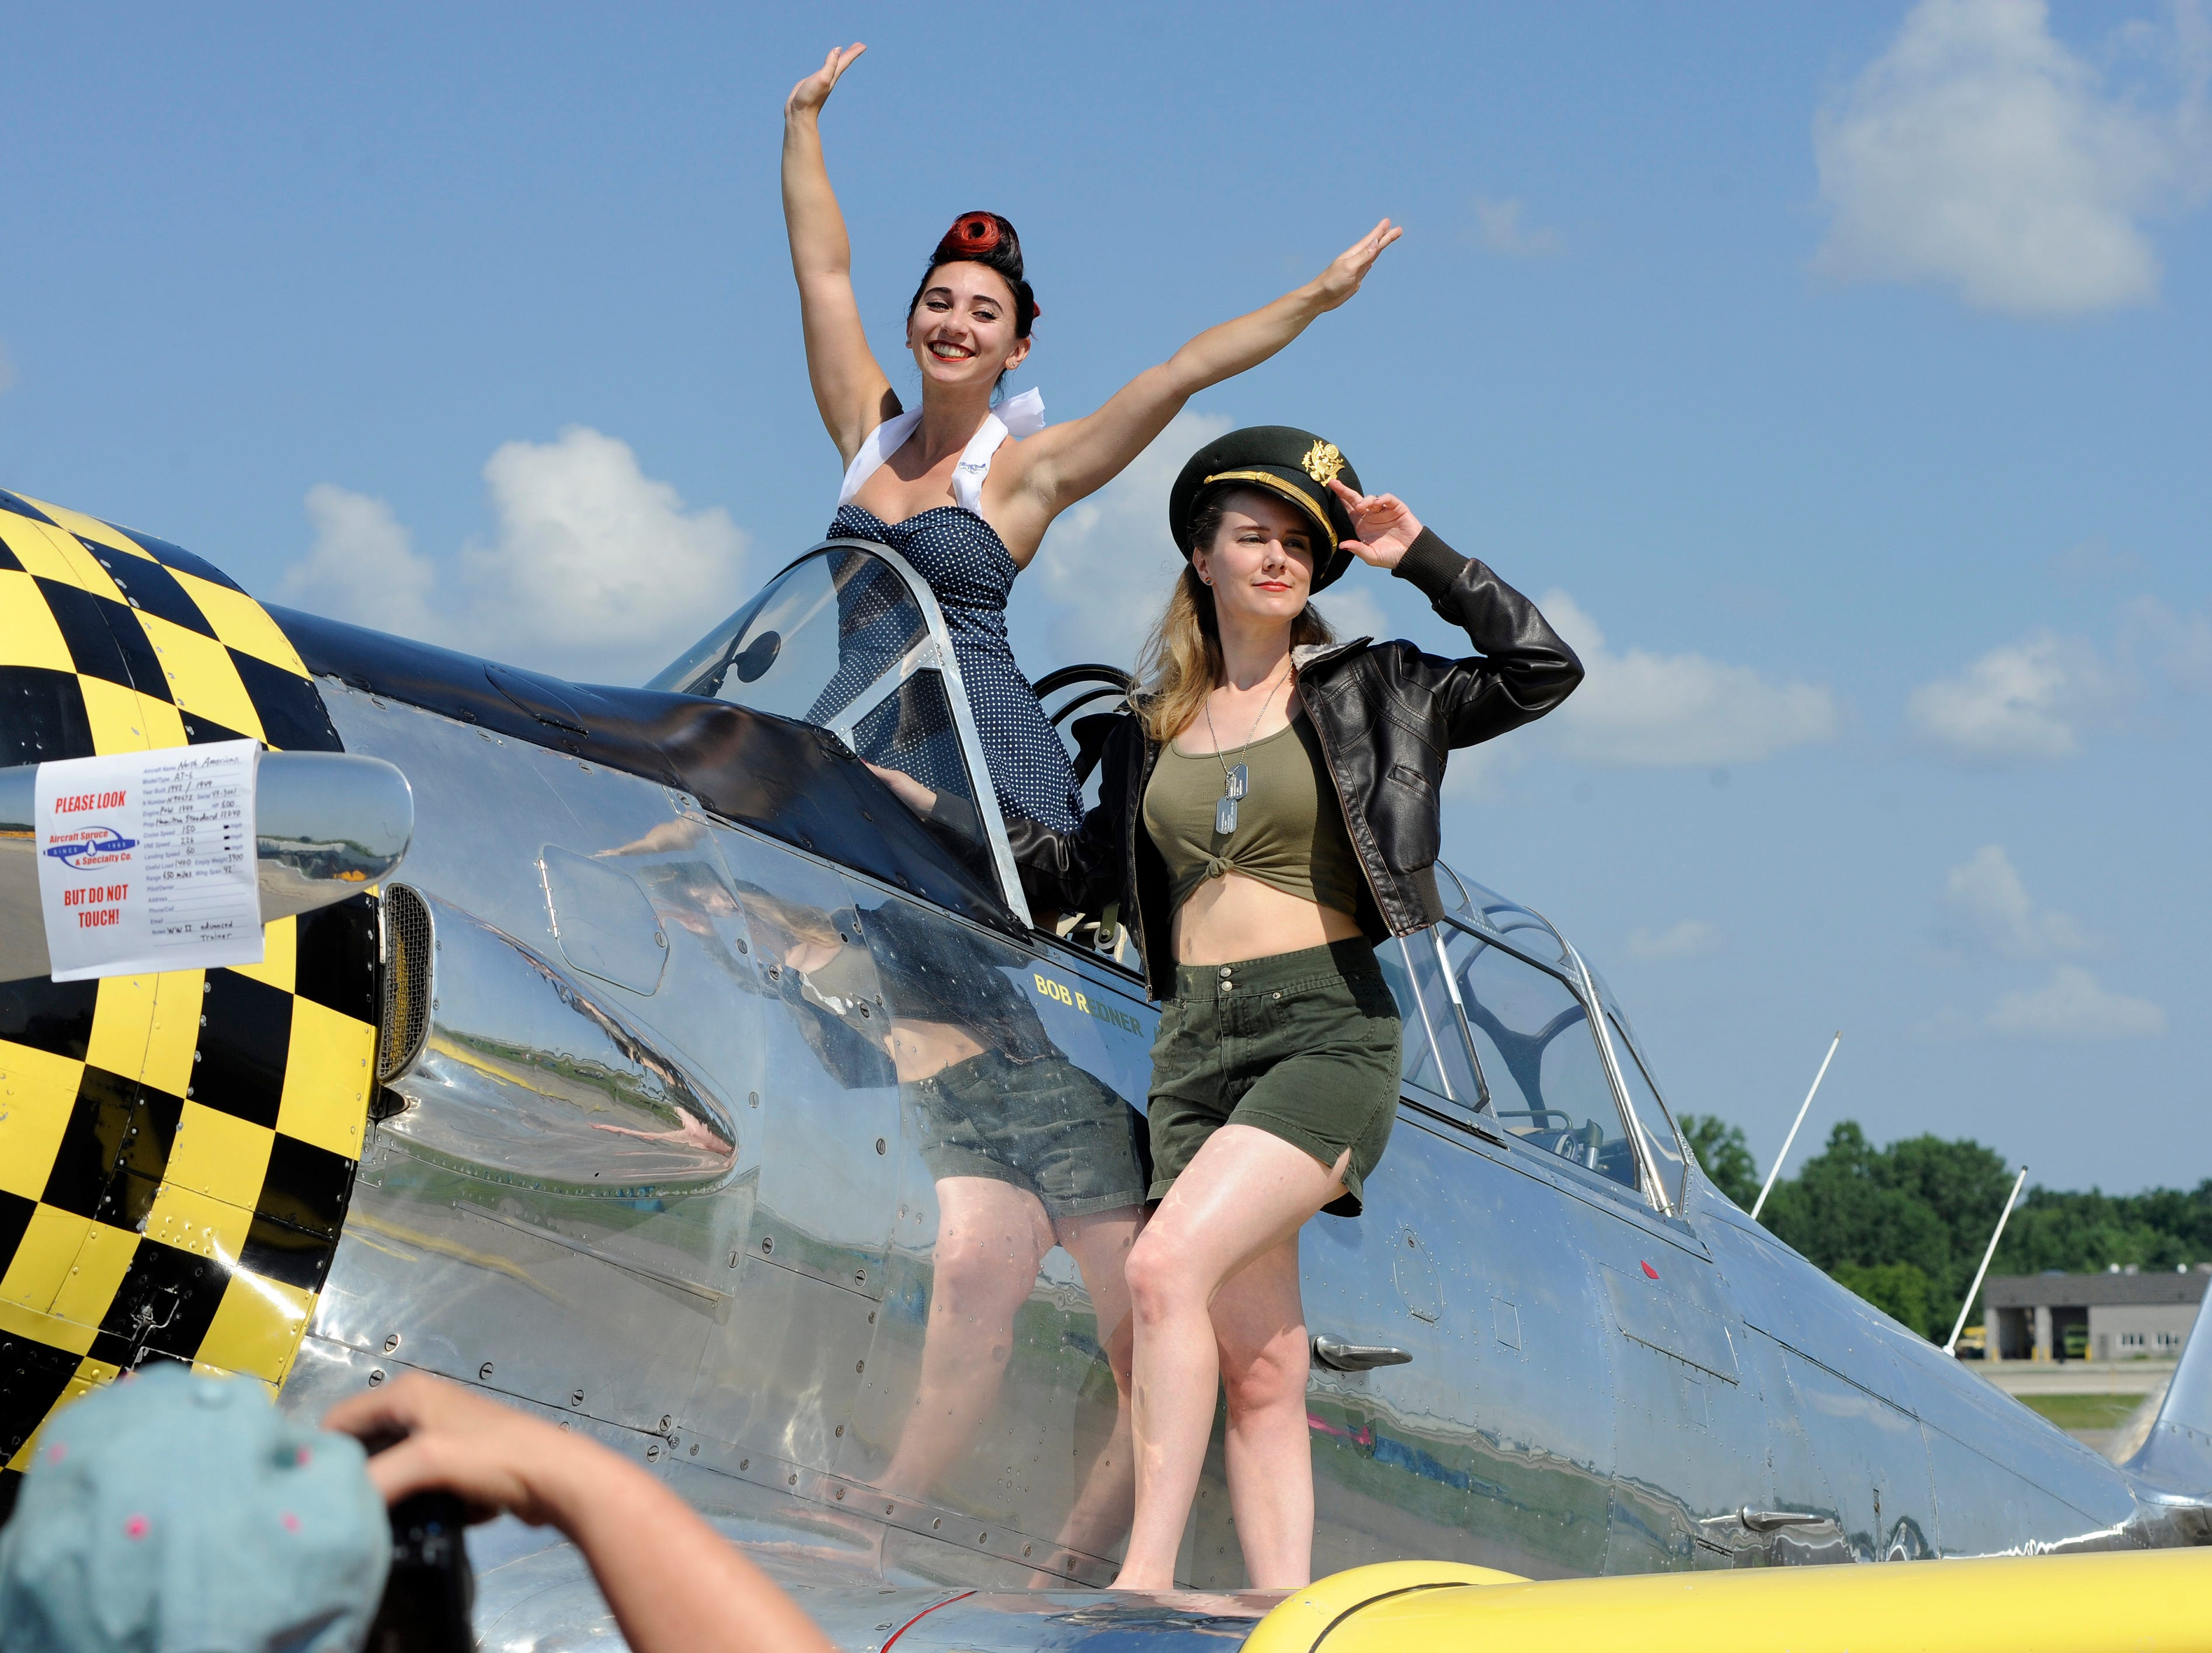 Motor City Belles Jessica Foster, left, and Emily Miller, dressed in historical clothing, pose for photos atop an AT-6 plane, which was a World War II advanced trainer.